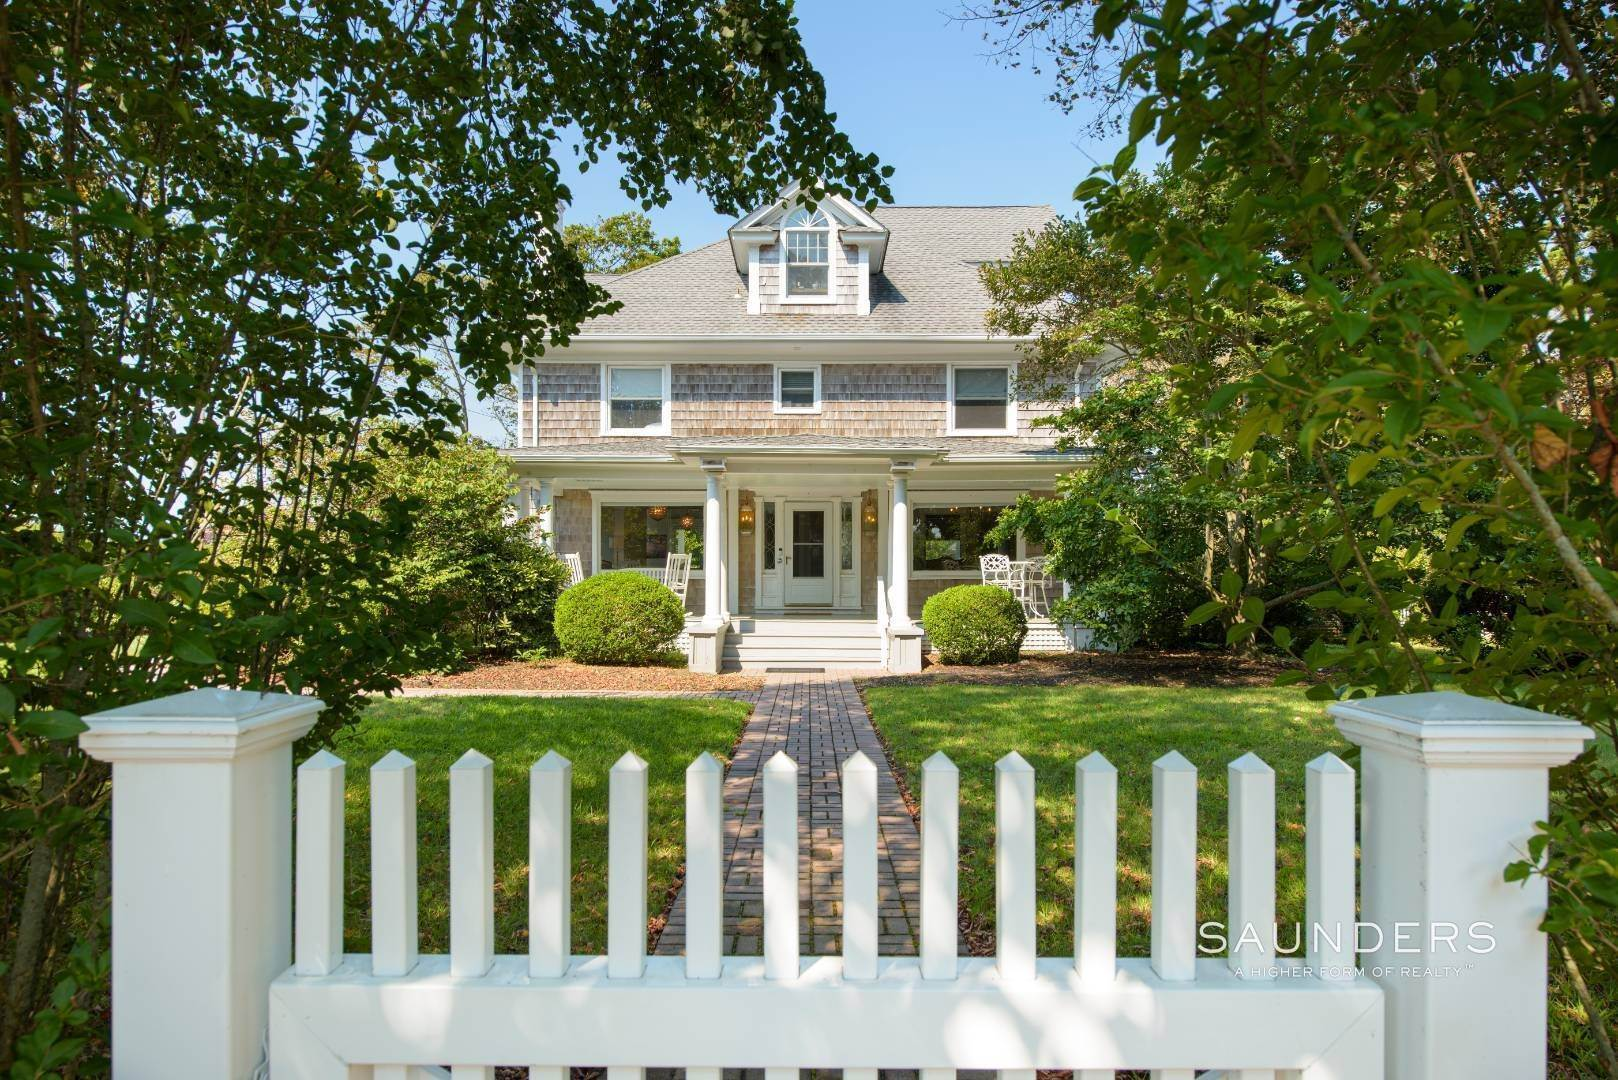 Single Family Homes for Sale at Magnificence With History In The Village 91 Potunk Lane, Westhampton Beach Village, Southampton Town, NY 11978